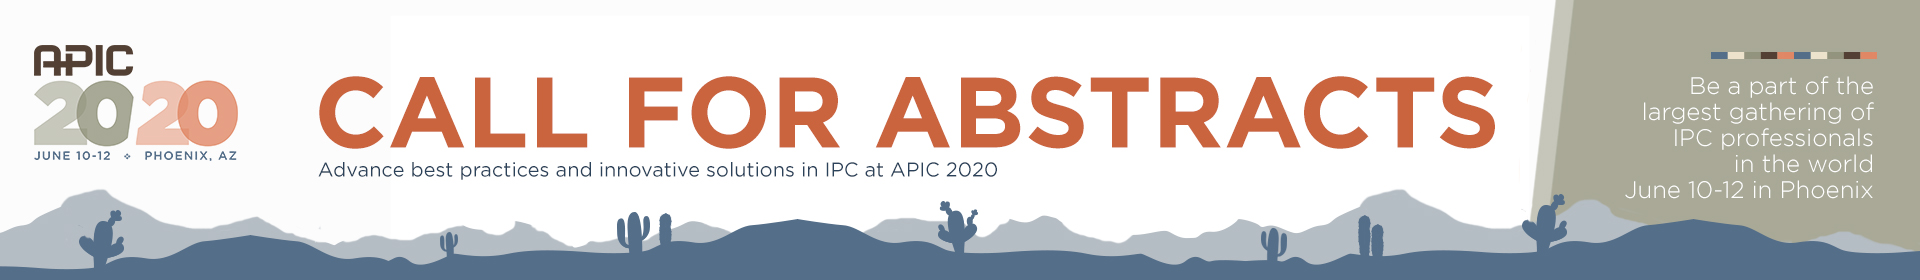 Call for Abstracts - APIC 2020 (Posters) Event Banner